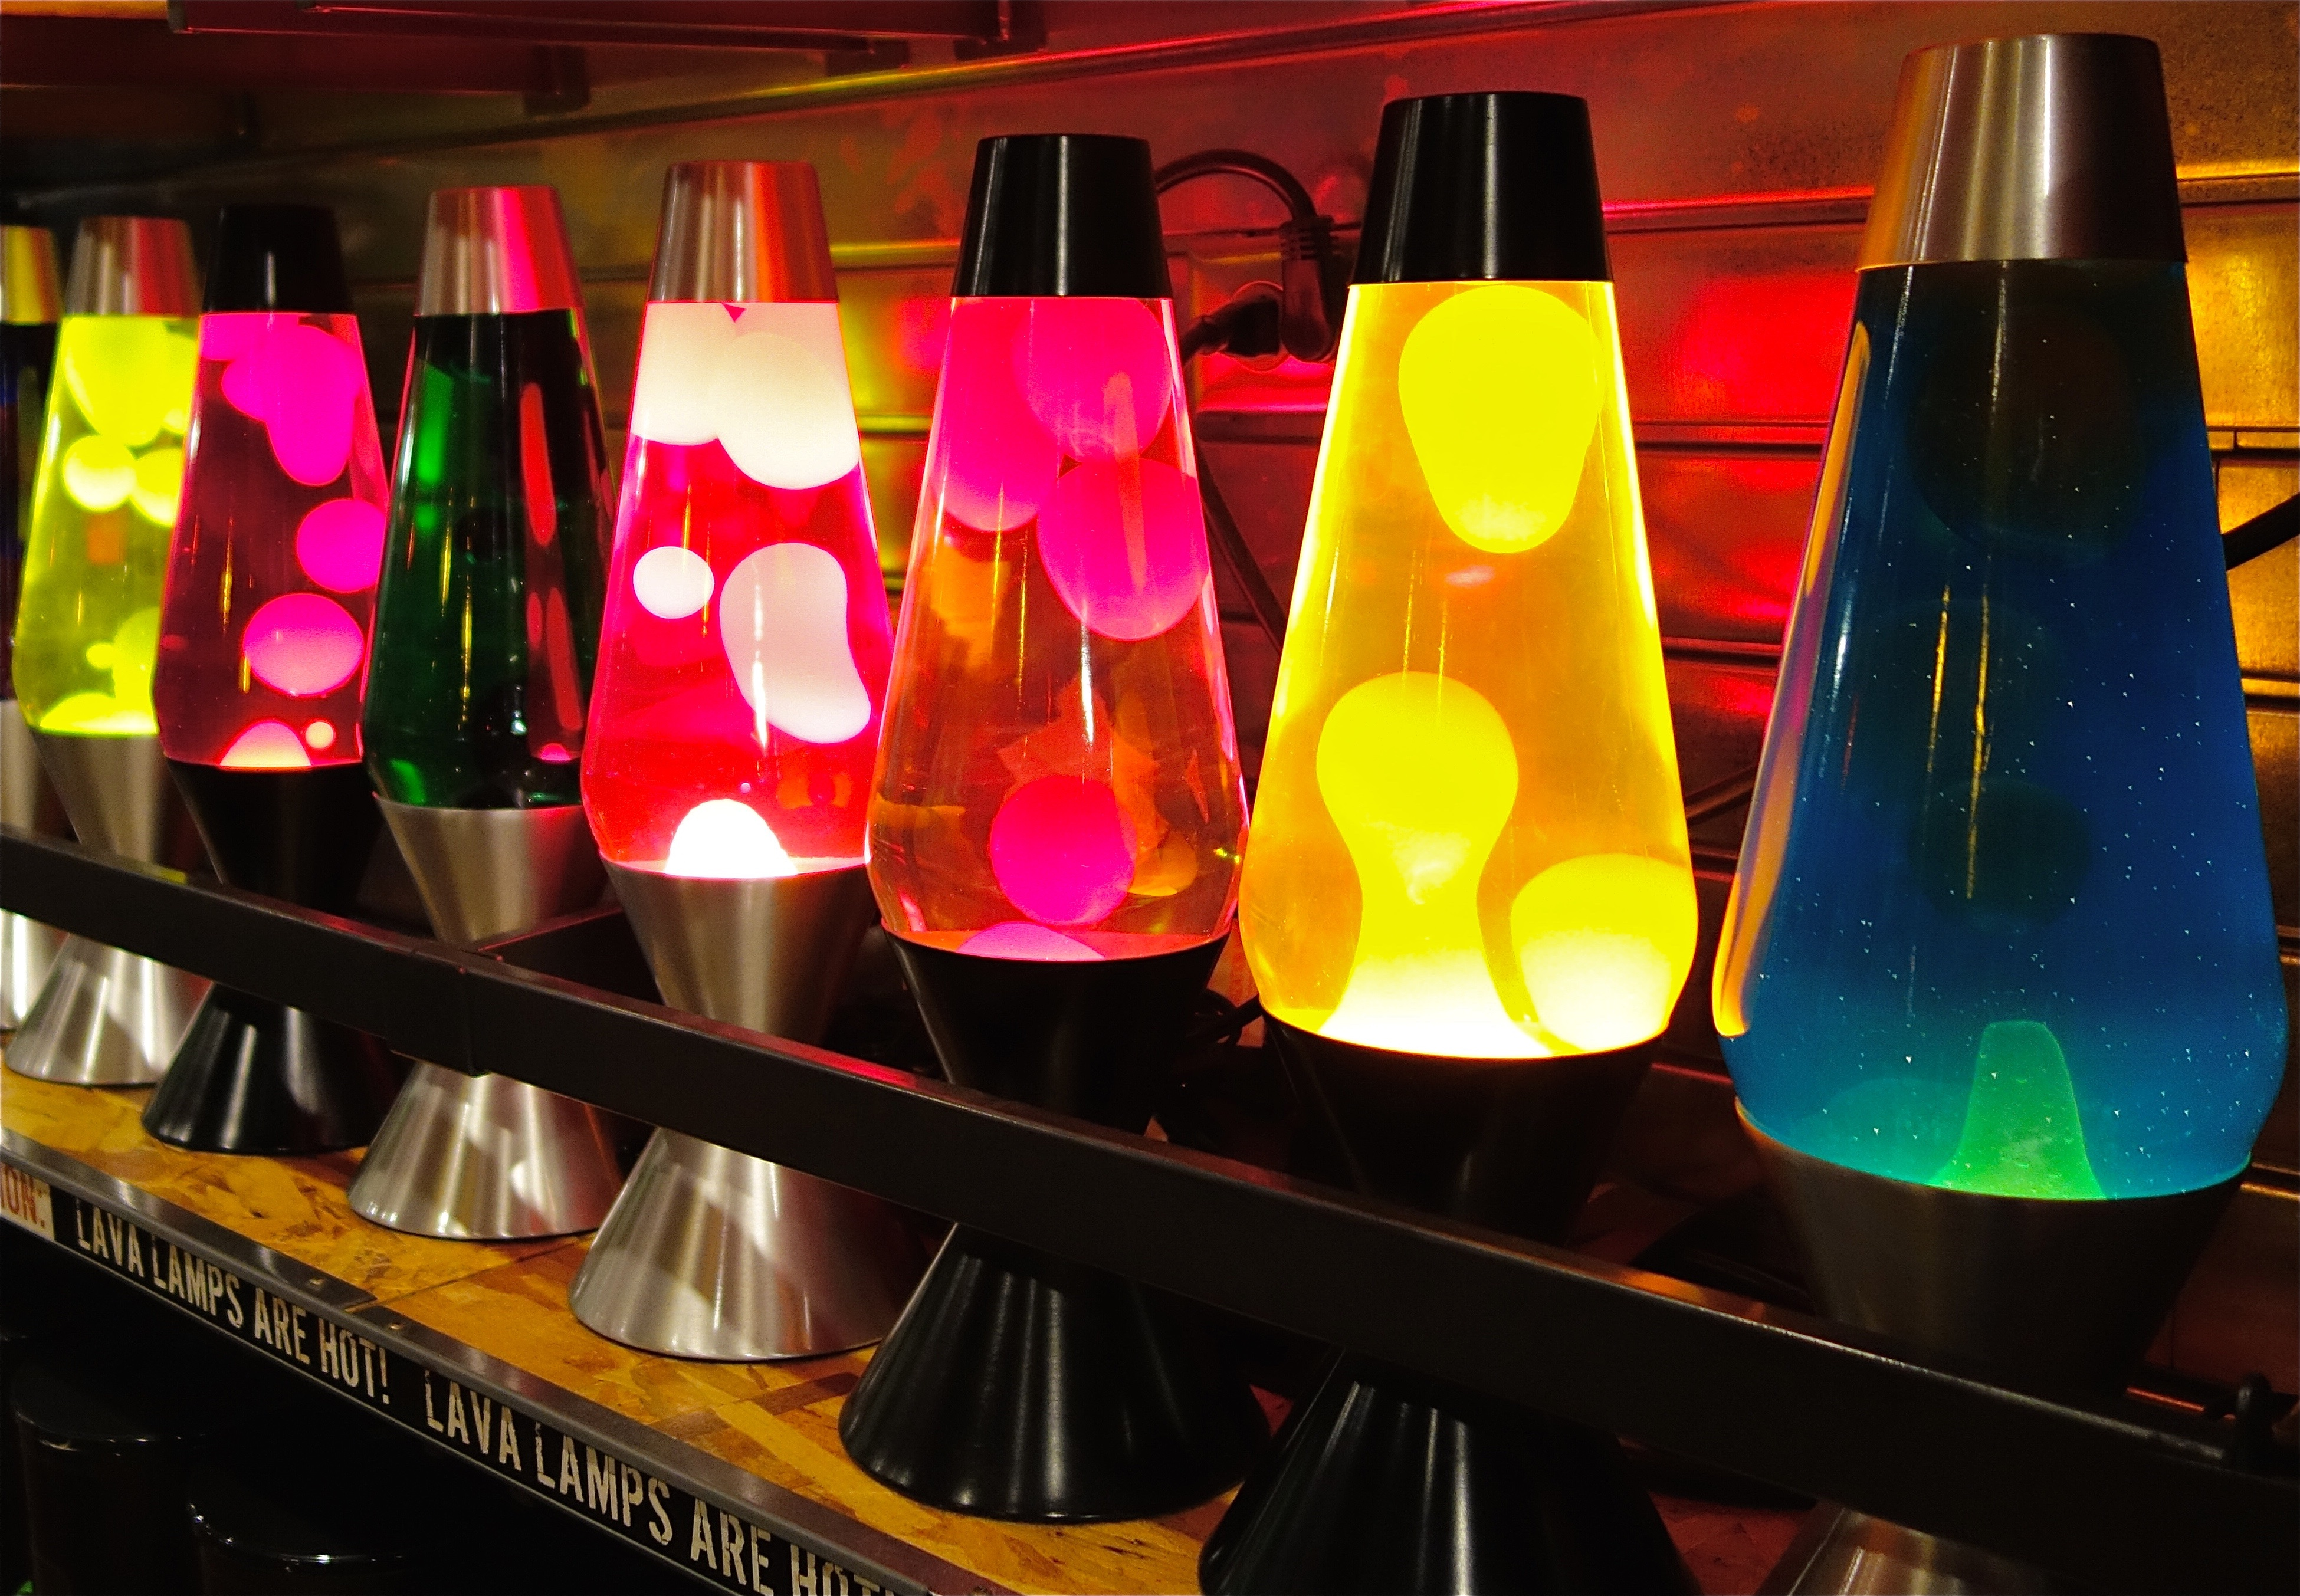 Lava lamp - Wikipedia